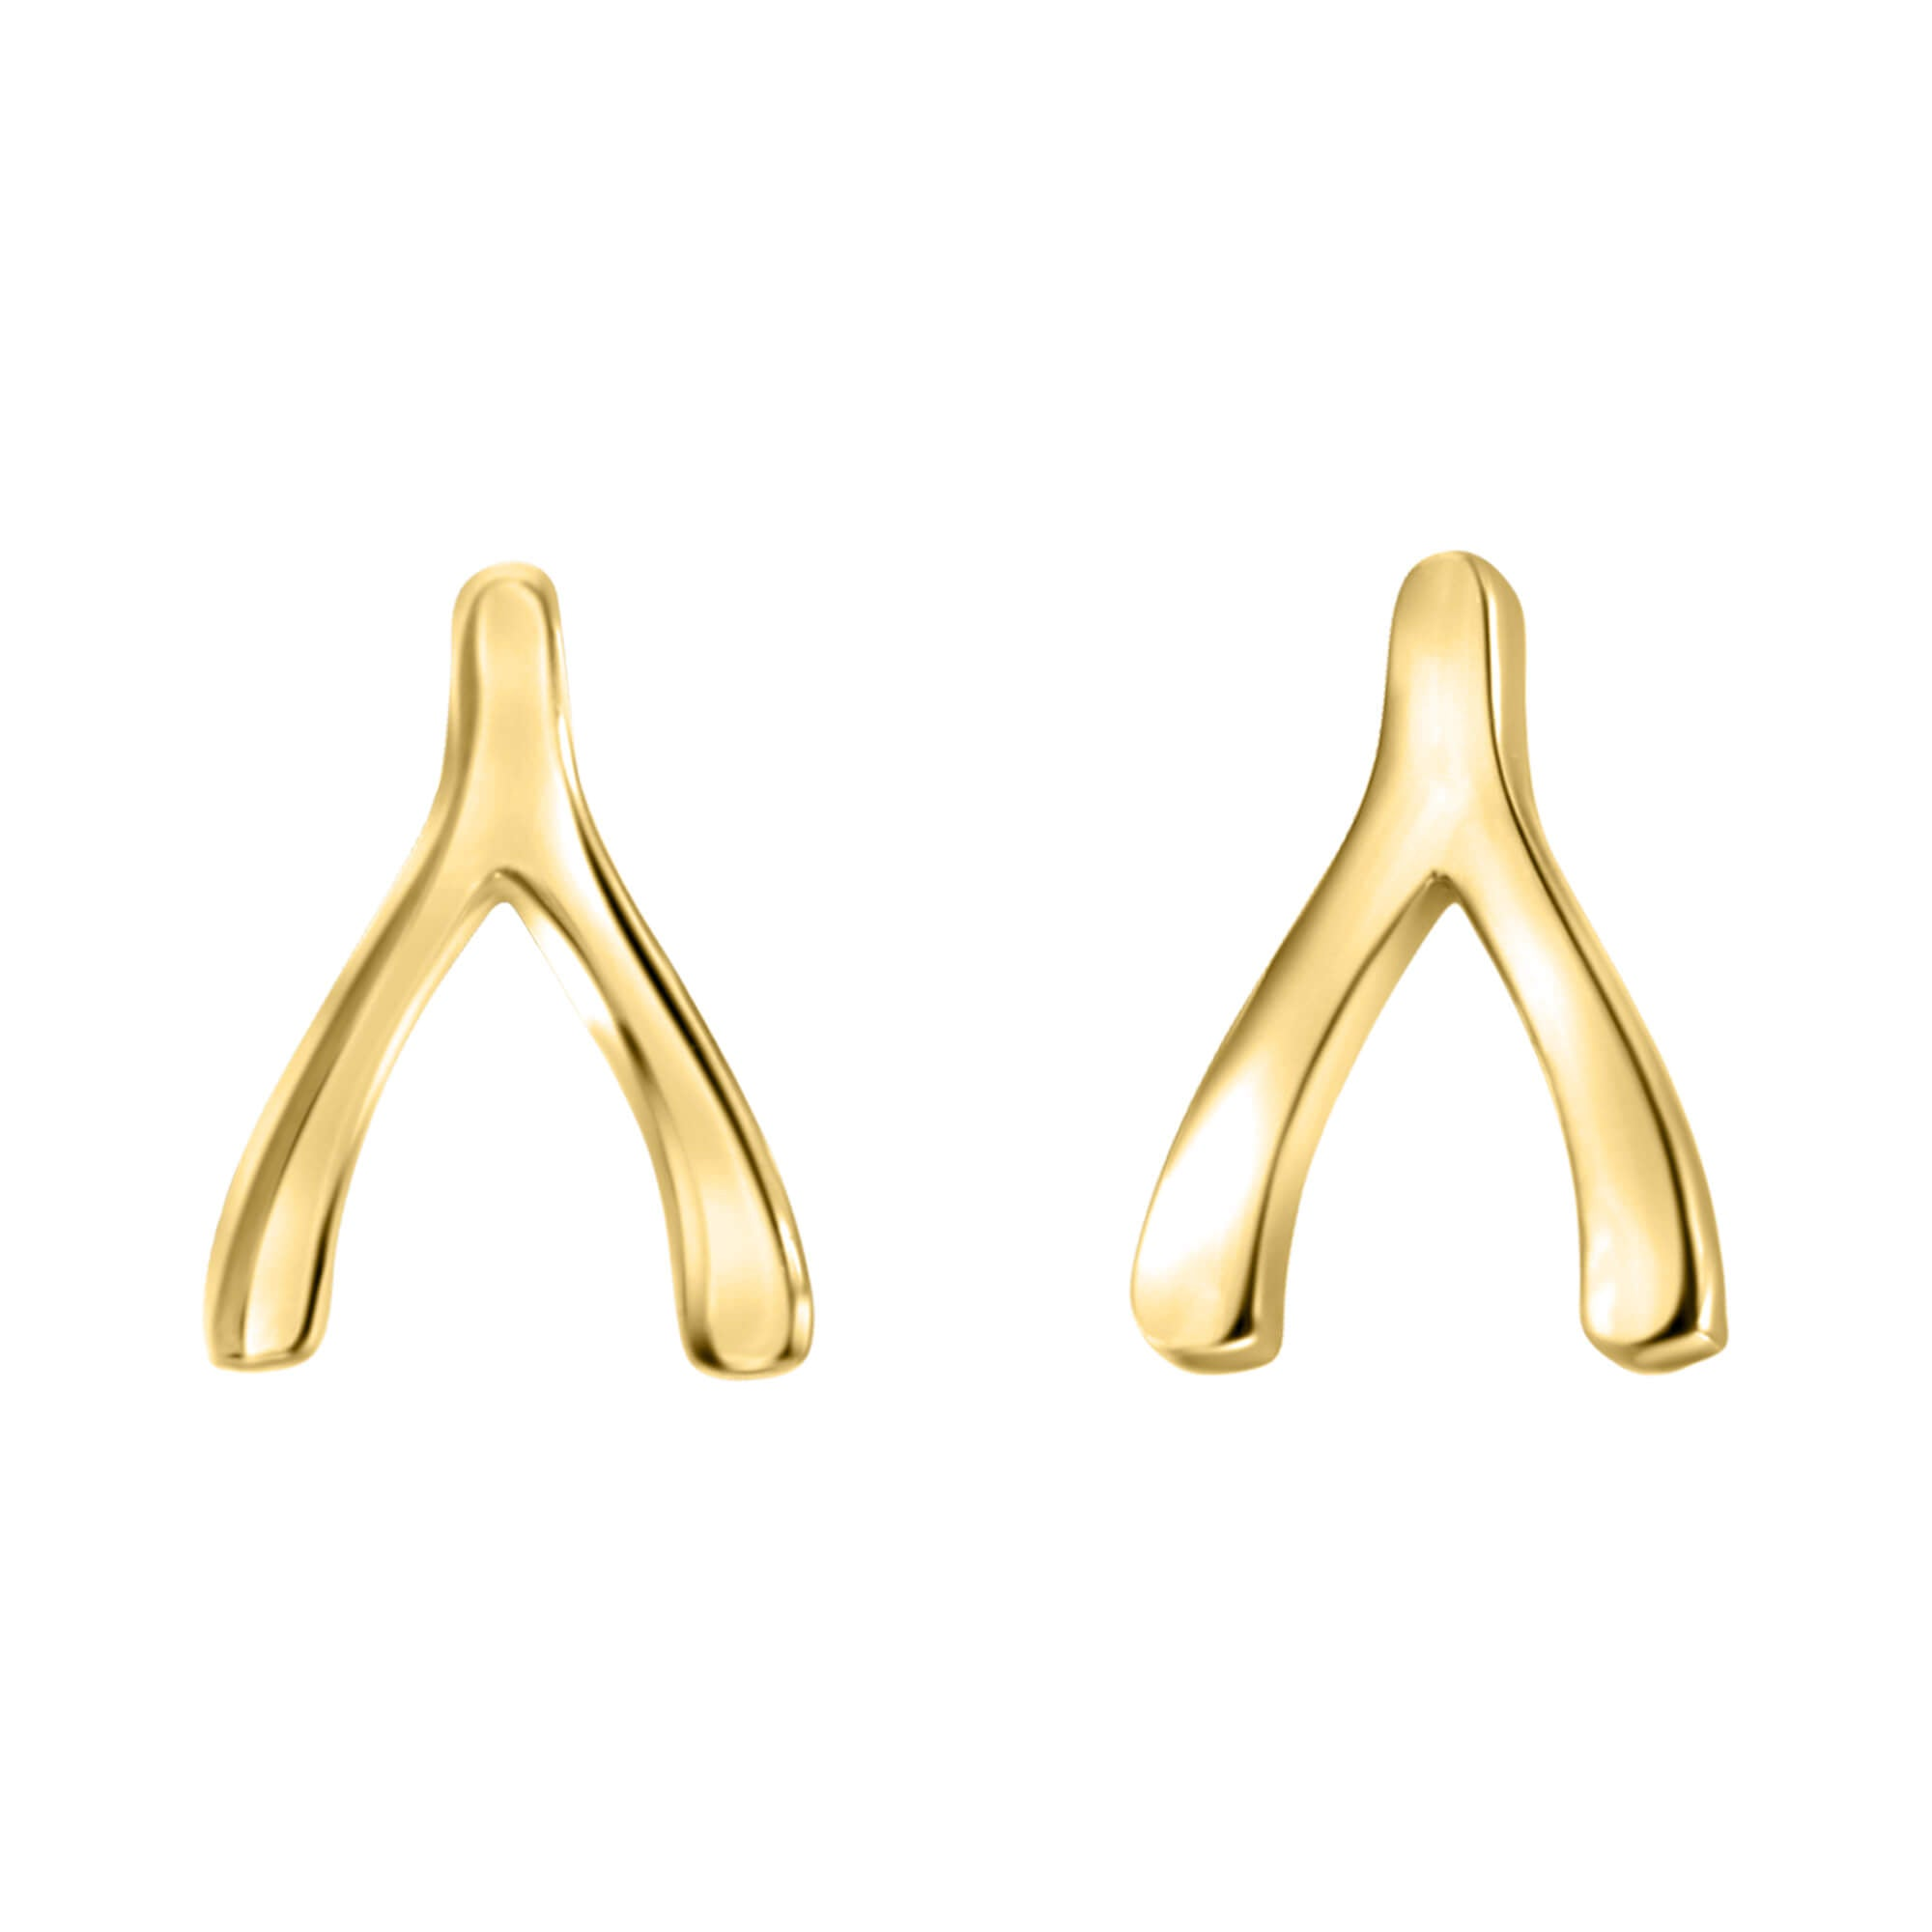 Wishbone Stud Earrings In 14K Solid Gold